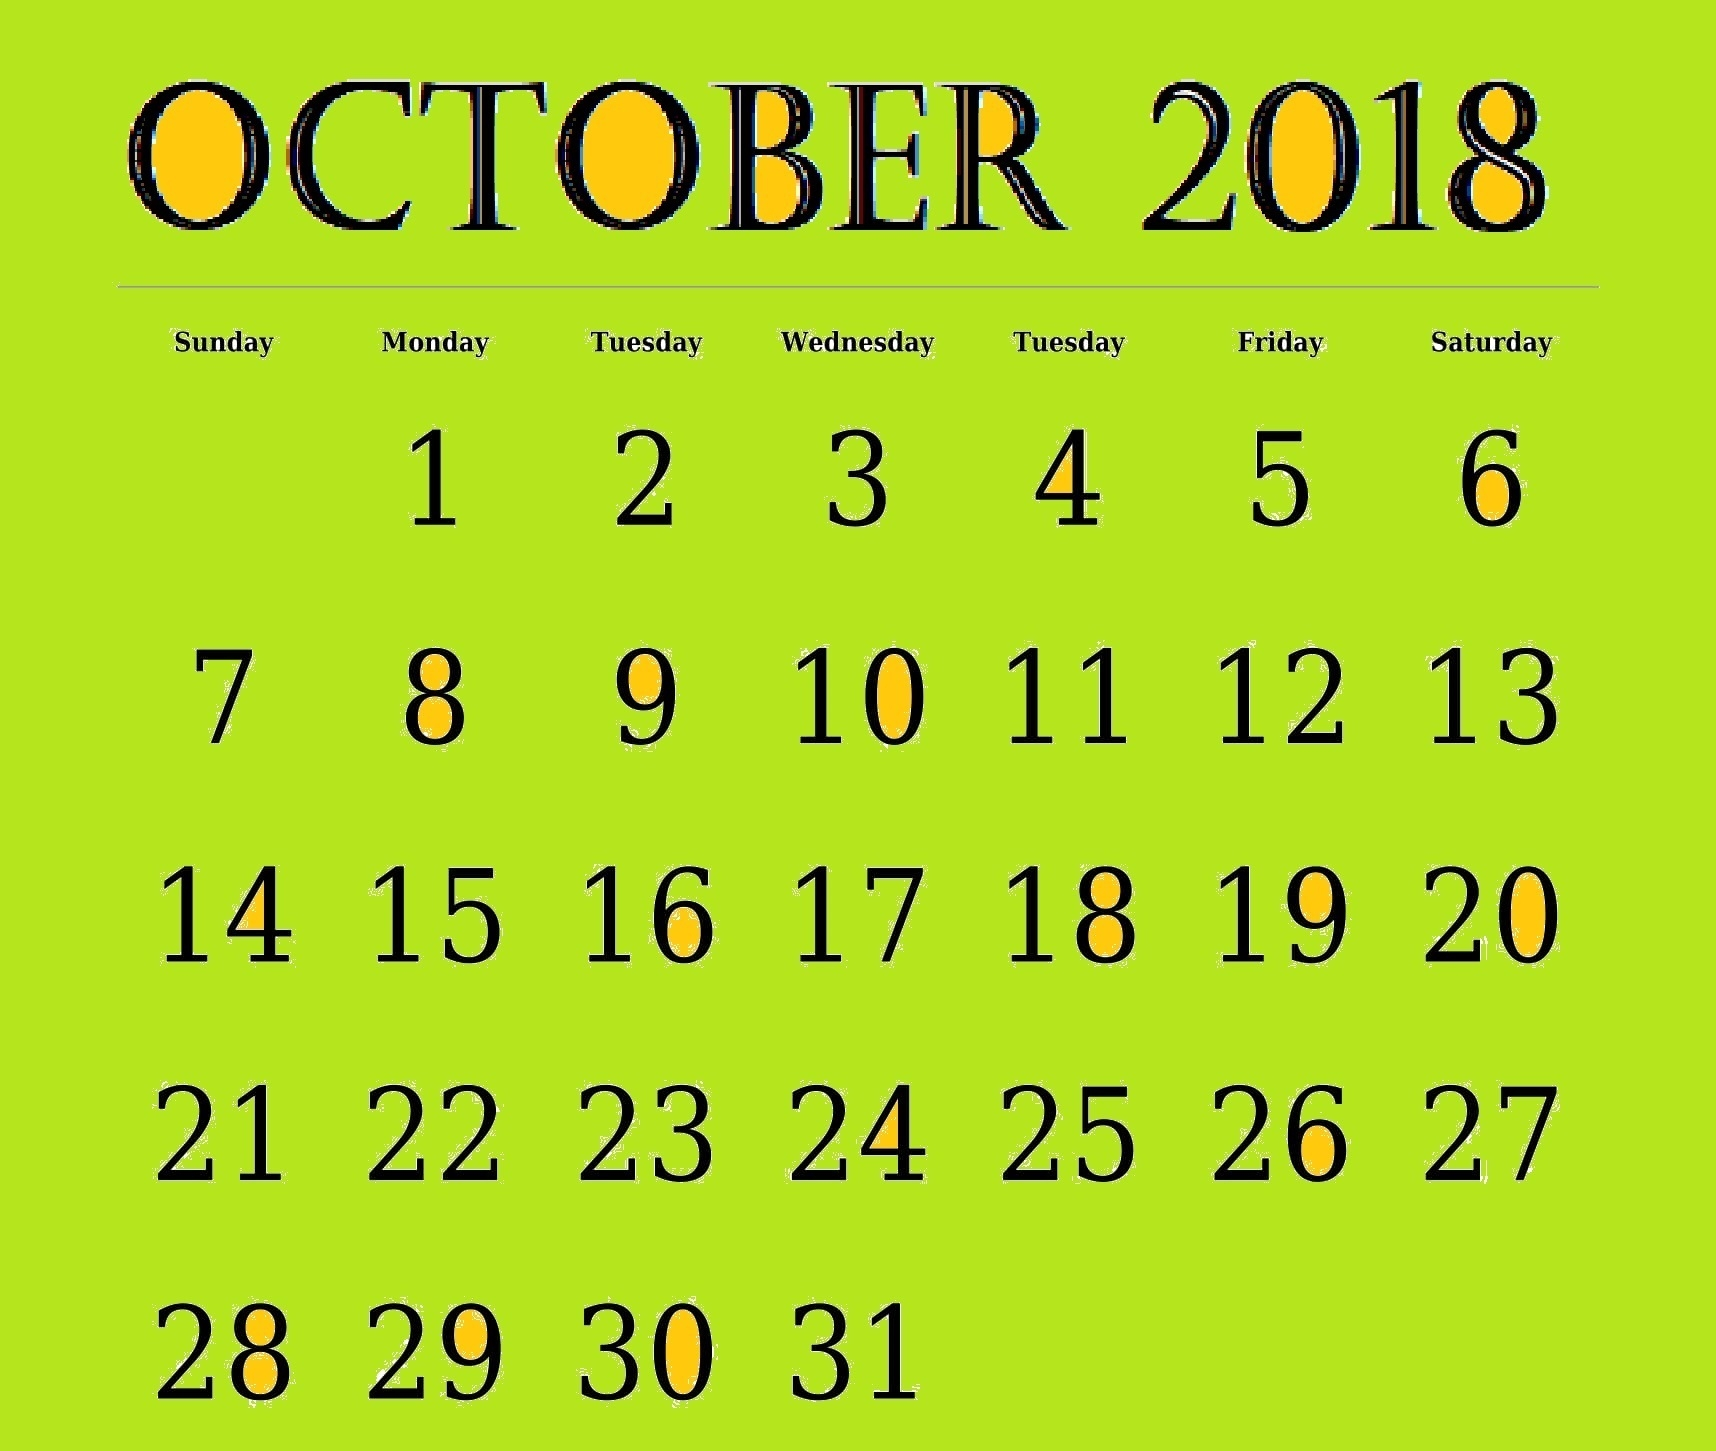 october 2018 editable calendar printable template free printable Free October 2018 Calendar Word Document erdferdf